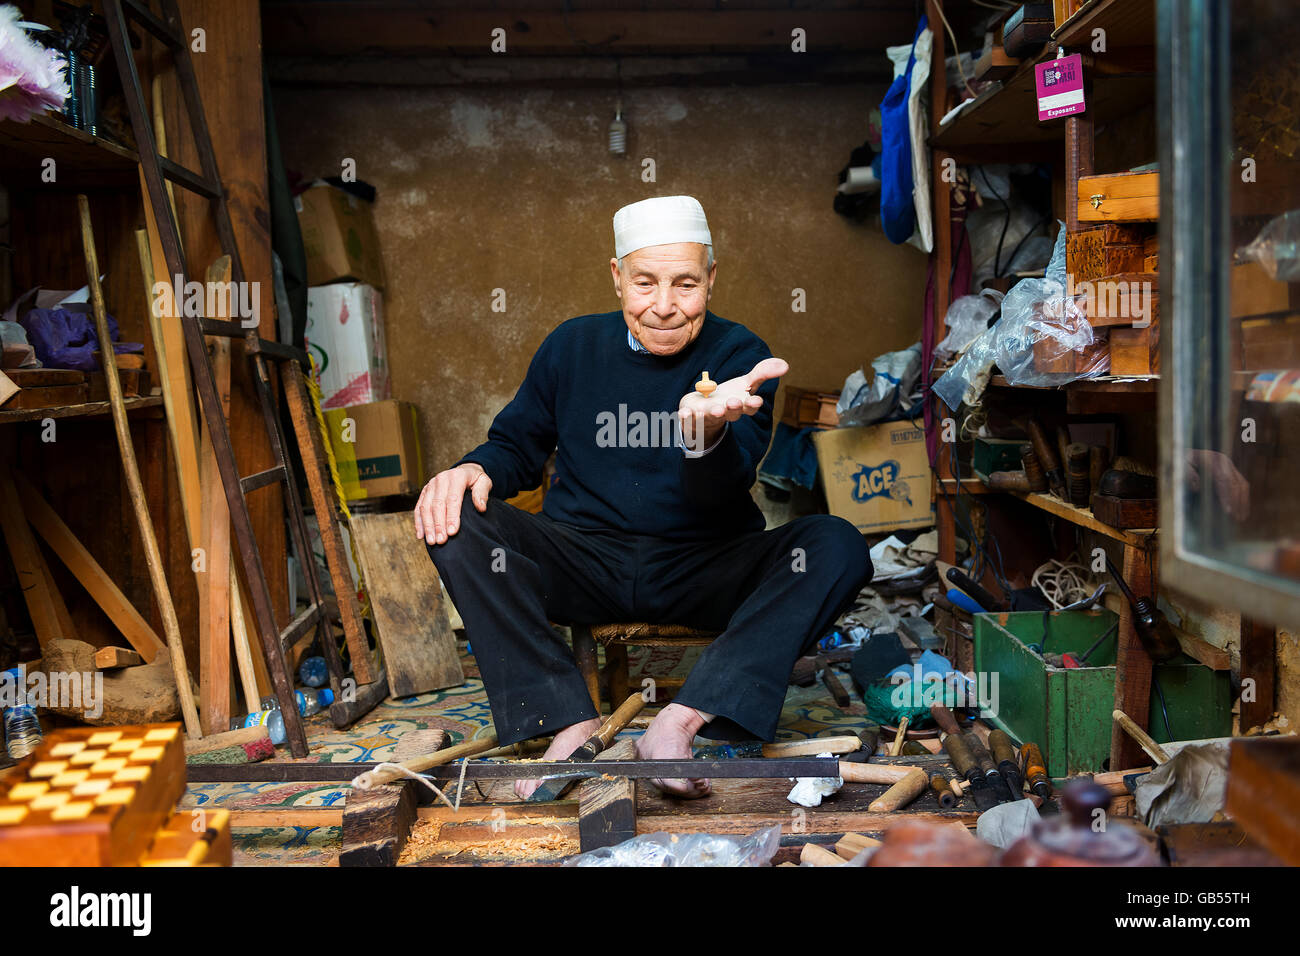 Fez, Morocco - April 11, 2016: An artisan showing a spinning top in his shop in the Fez Medina. - Stock Image